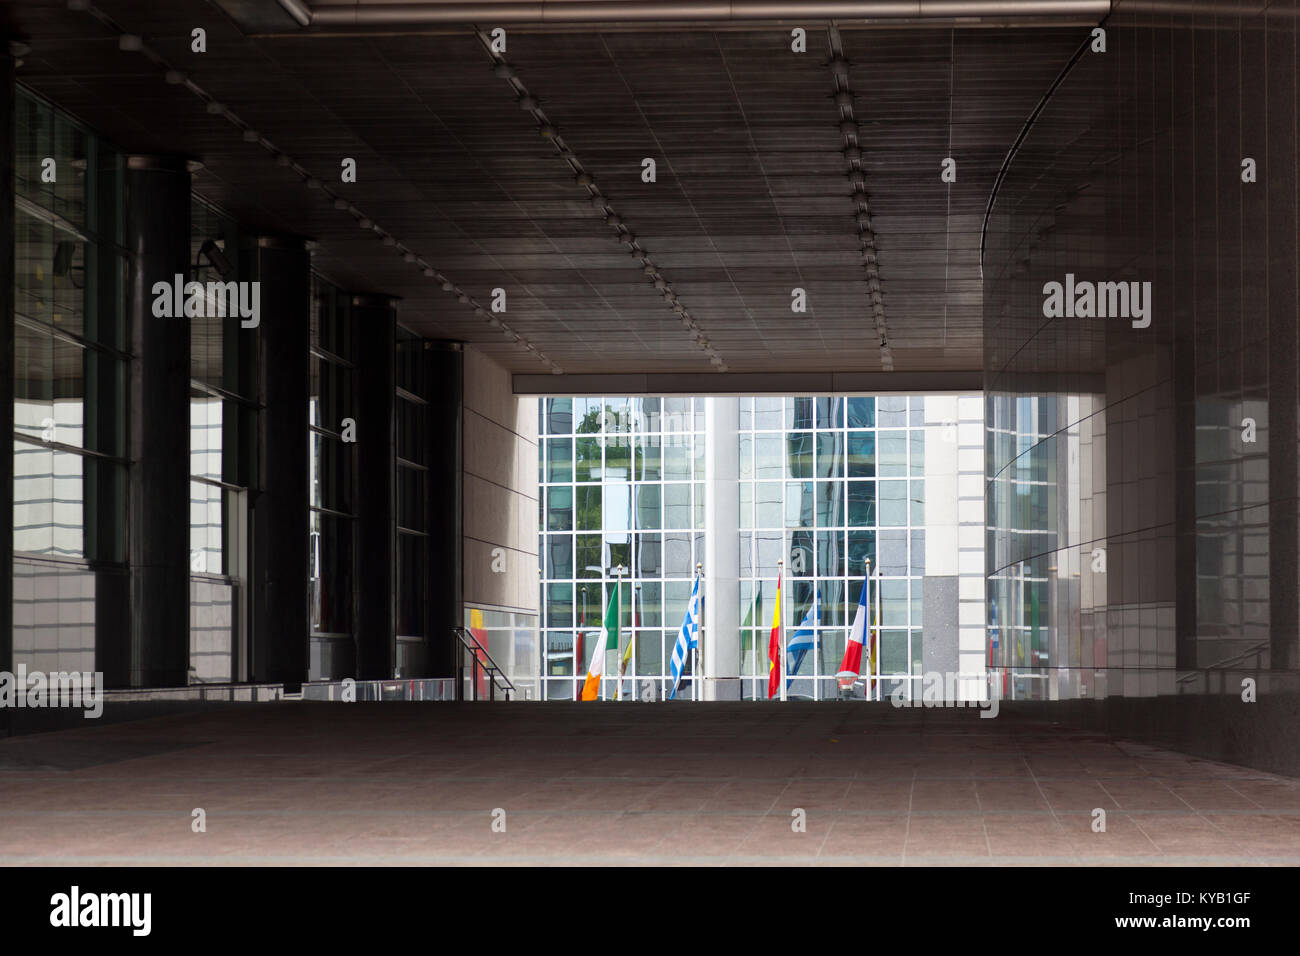 The European Parliament buildings in Brussels, Belgium with lots of European flags seen through a tunnel under the - Stock Image